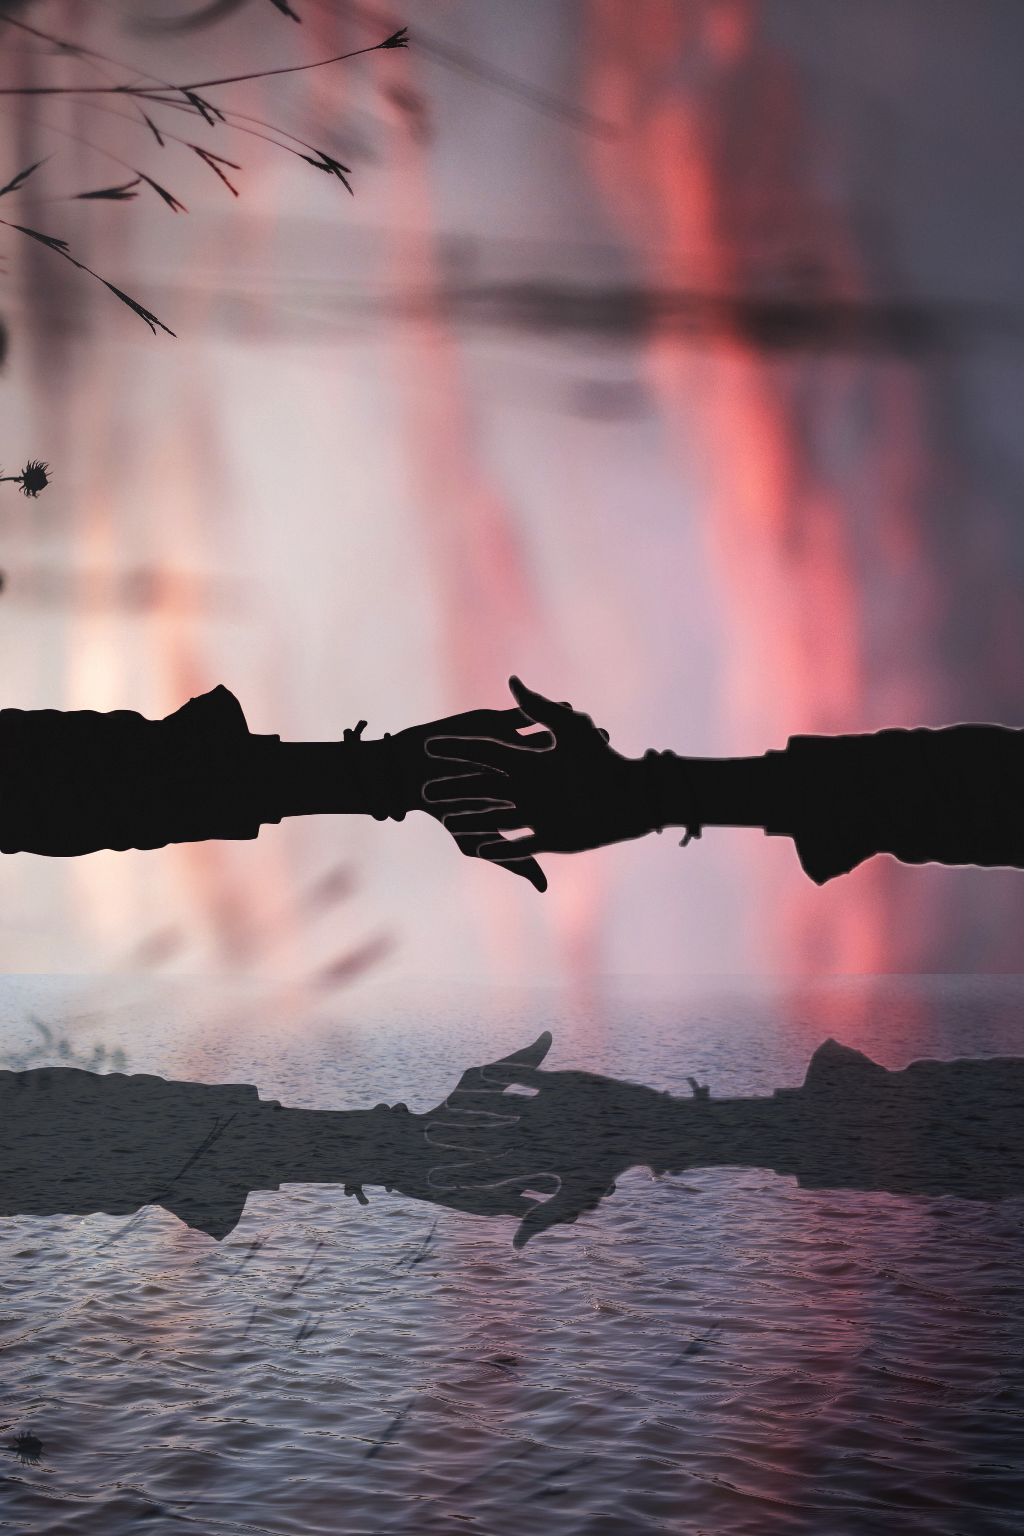 #freetoedit #reflection #hands #holdinghands #wow #river #lake #water #cool  #irchandsilhouette #handsilhouette